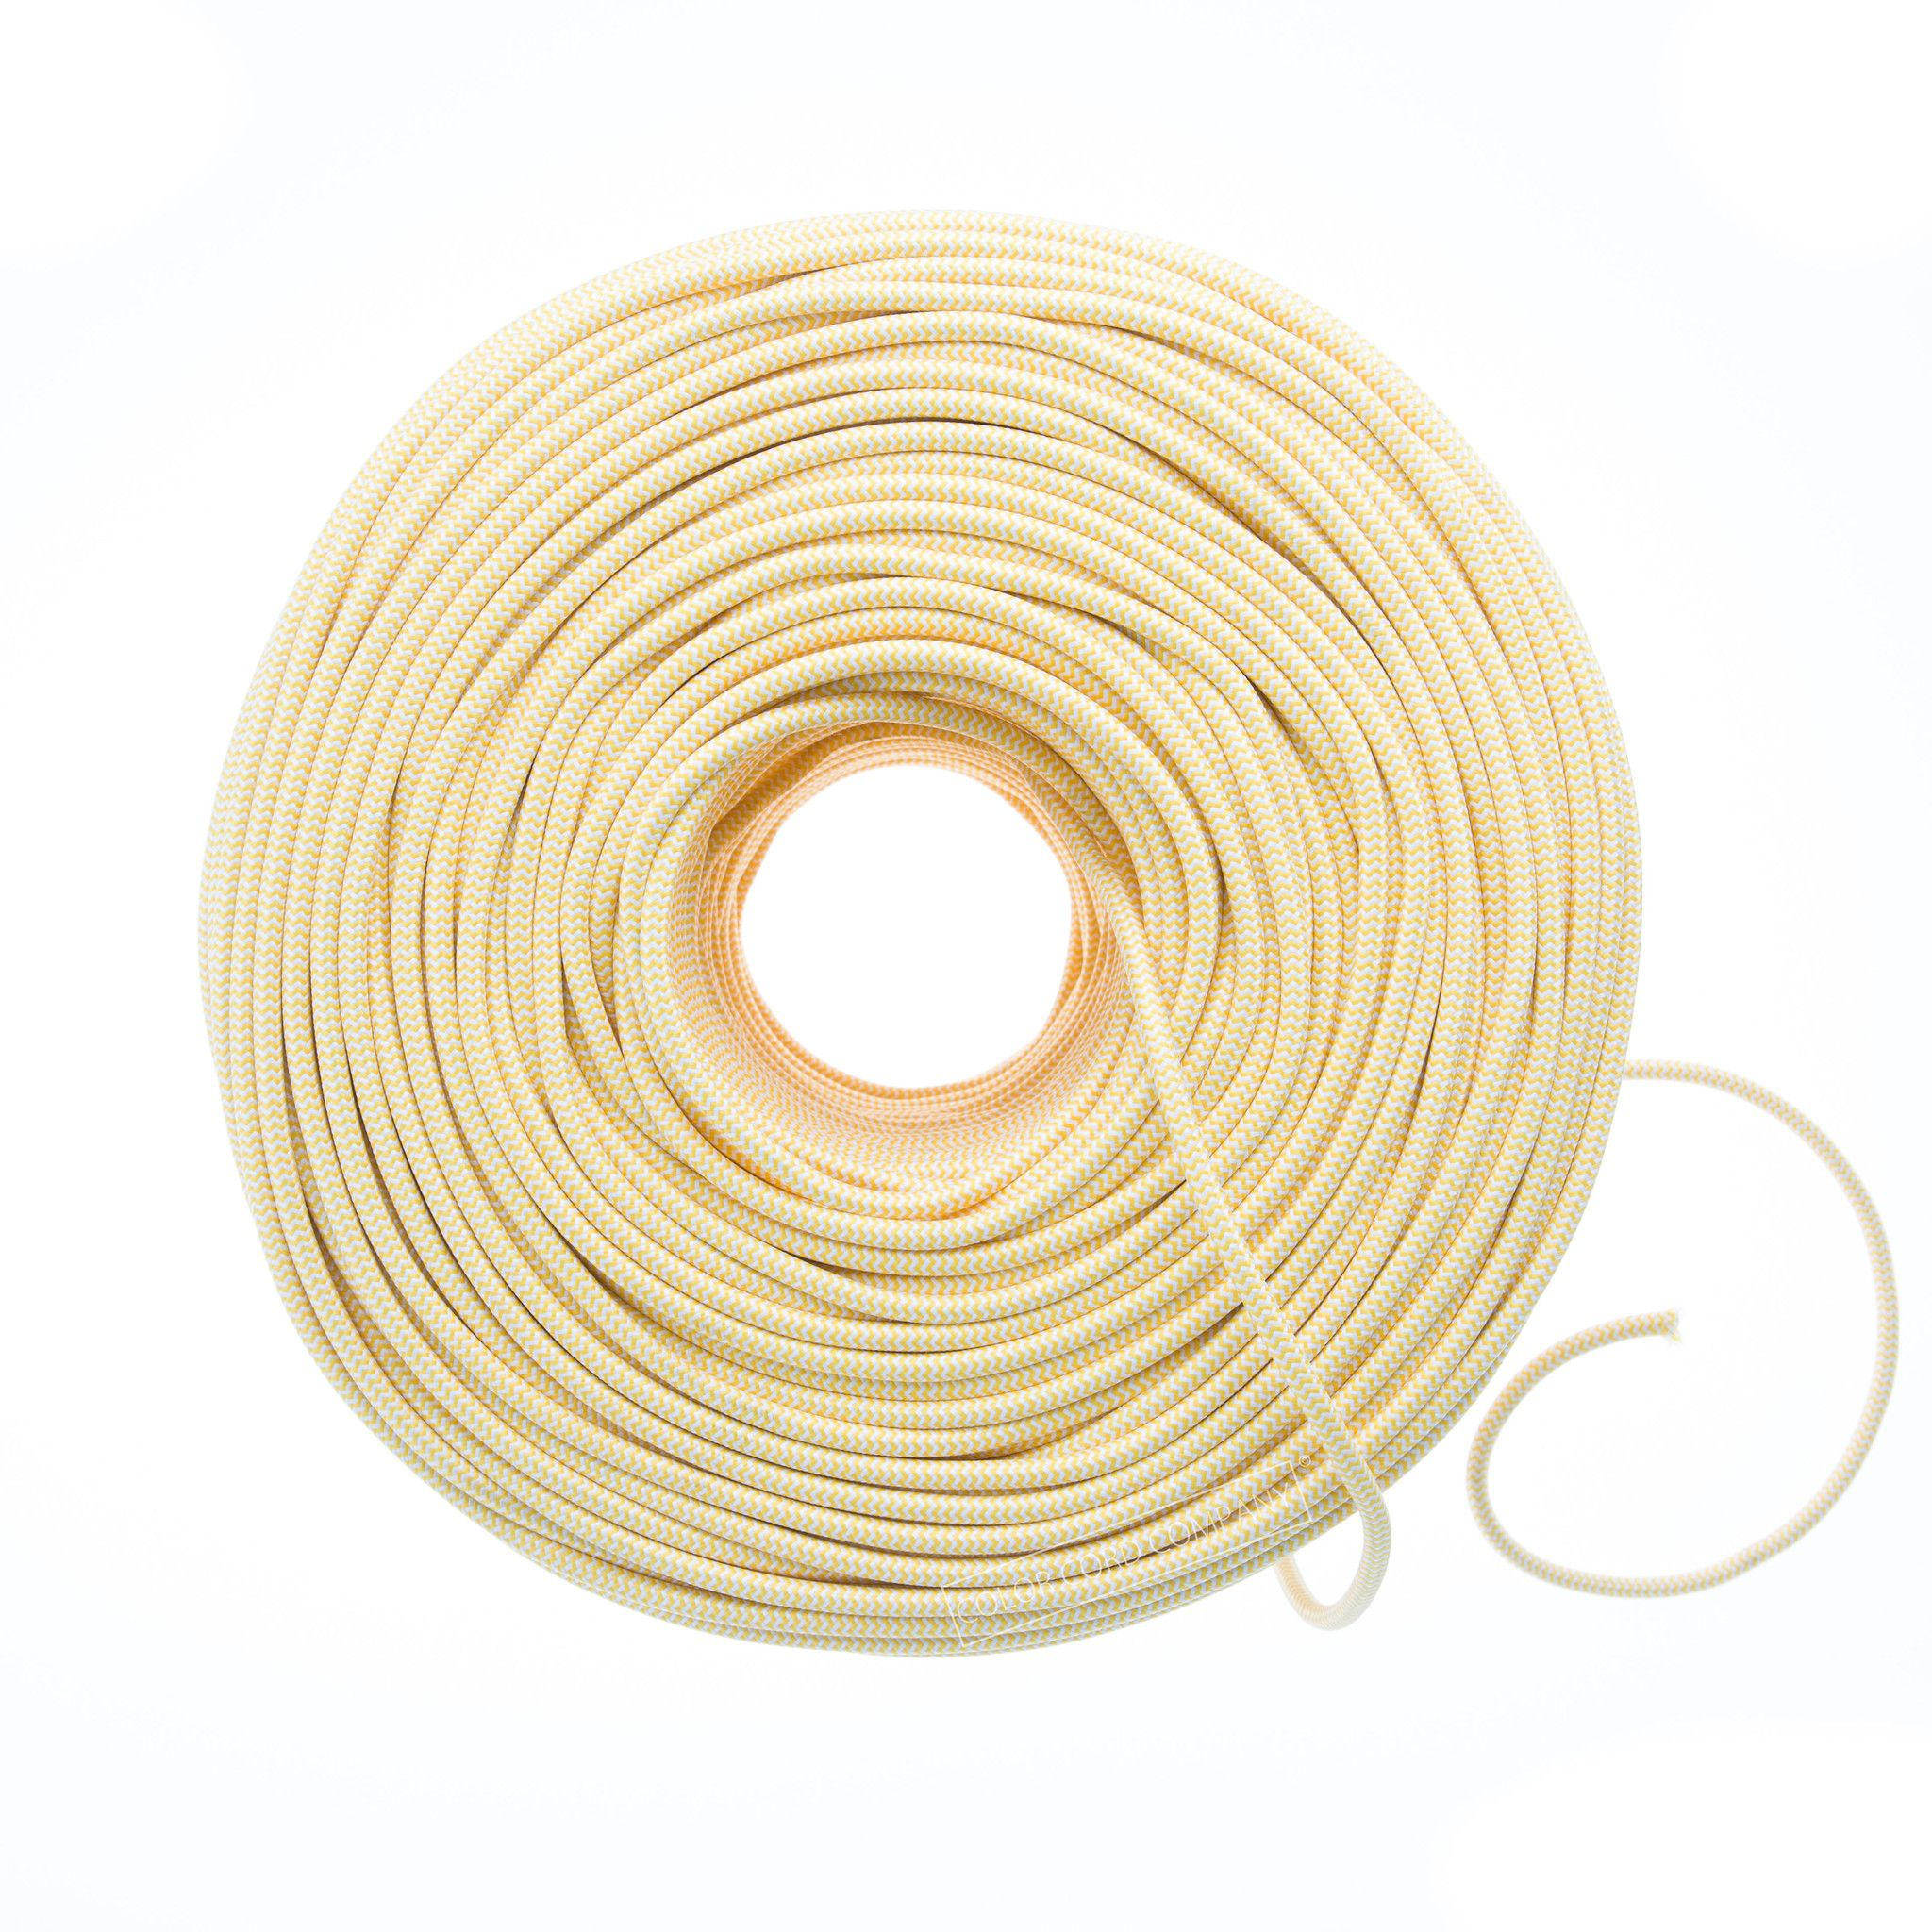 So Cord Listed 3 4 5 Conductor So Sow Cable Flexible Cored: Fabric Covered WIre - Yellow & White ZigZag